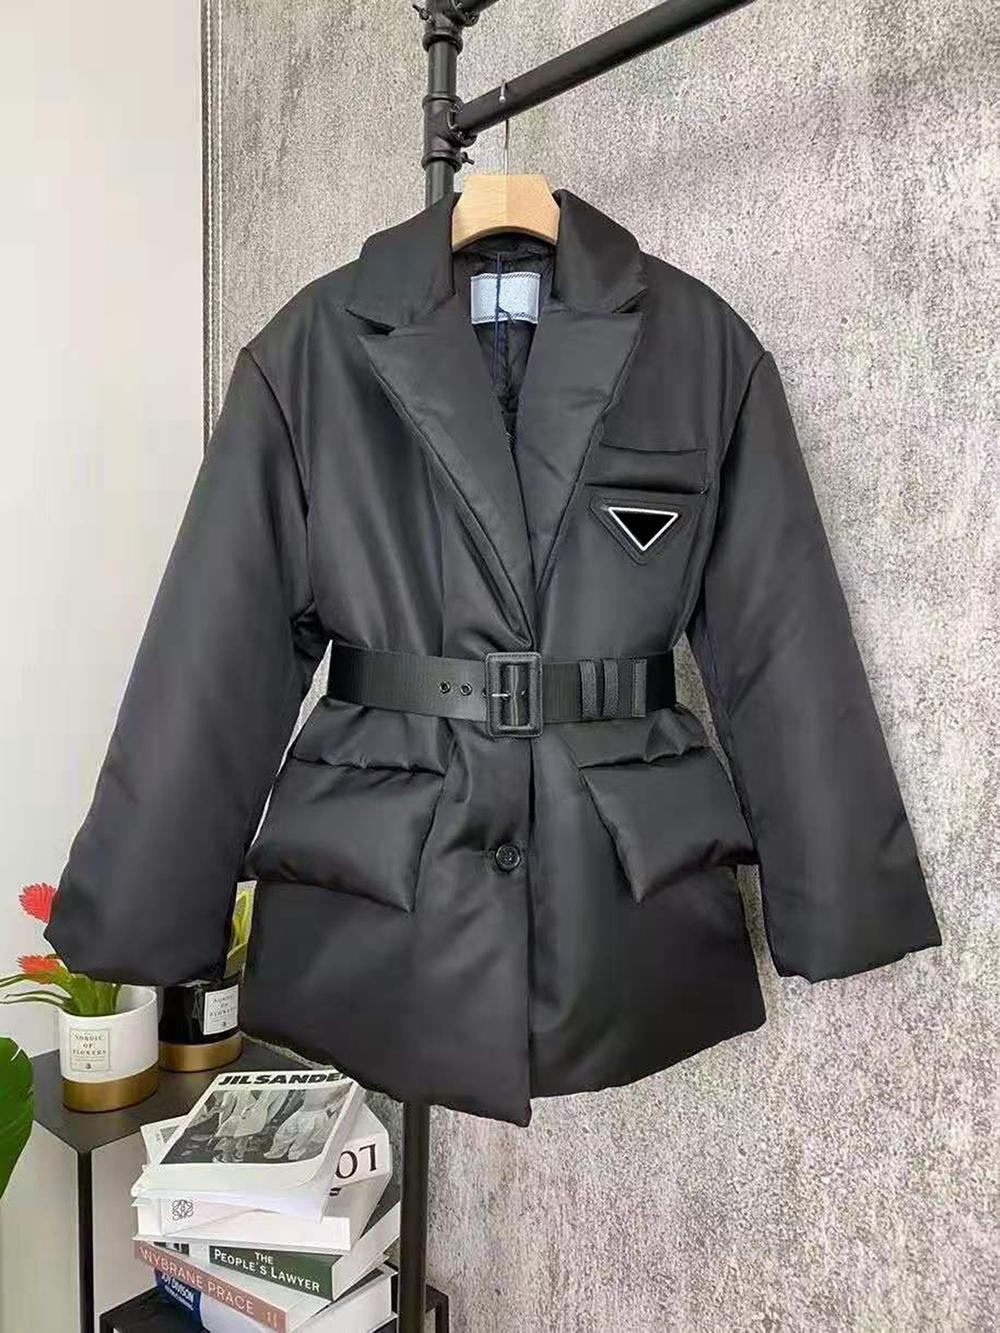 Women Jacket Hoodids Terry Parkas Top Quality Lady Coat with Inverted Triangle Budge Winter Thick Coats Long Sleeves Windbraker Style Size S-L